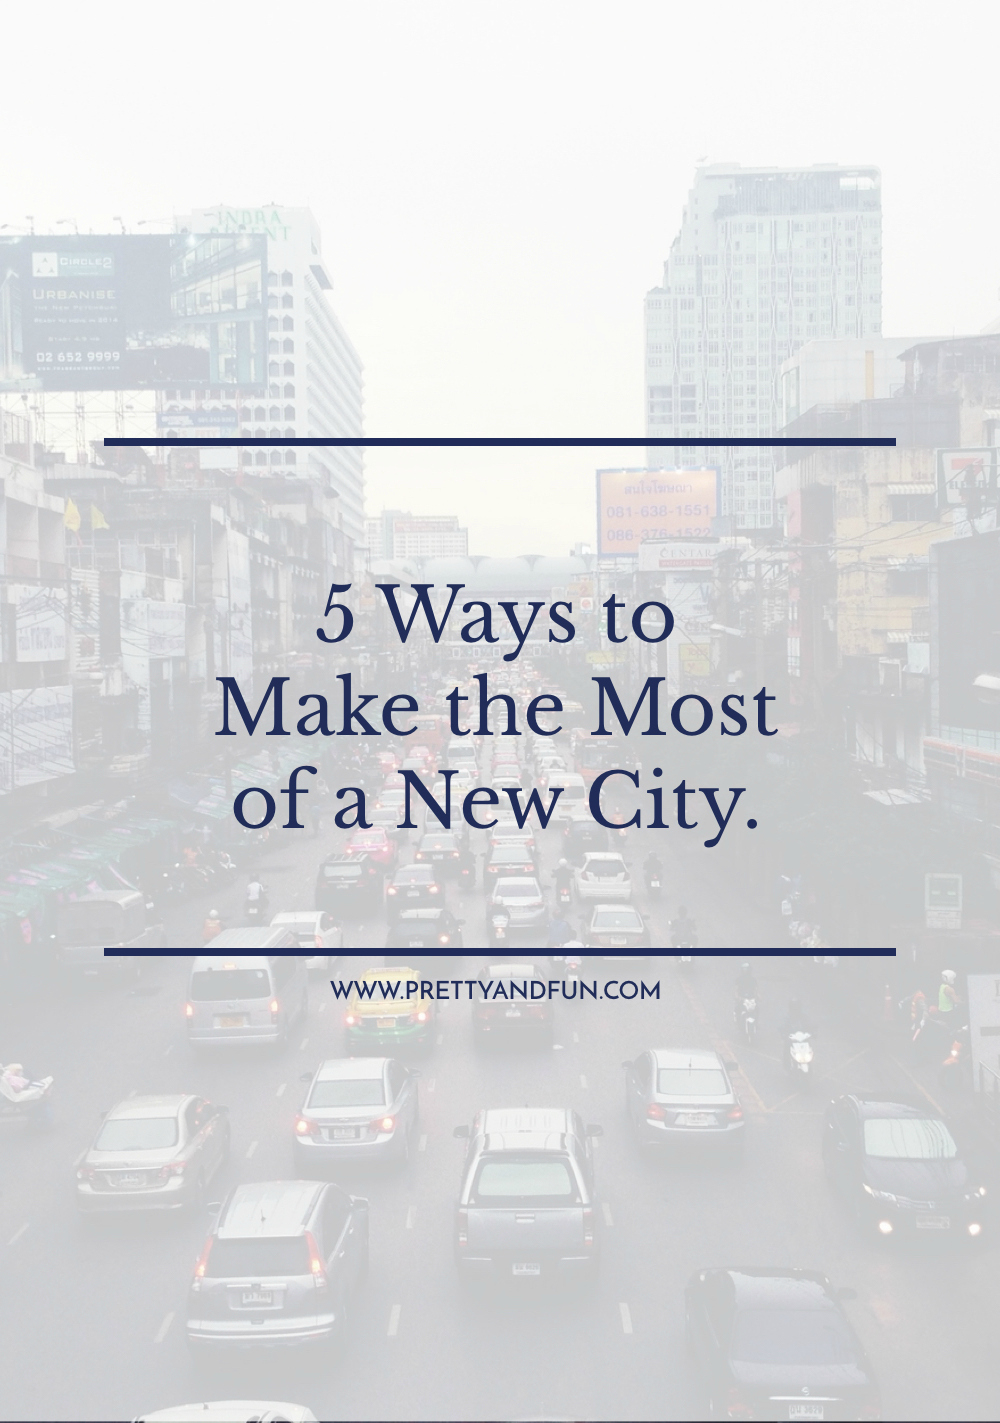 5 Ways to Make the Most of a New City.